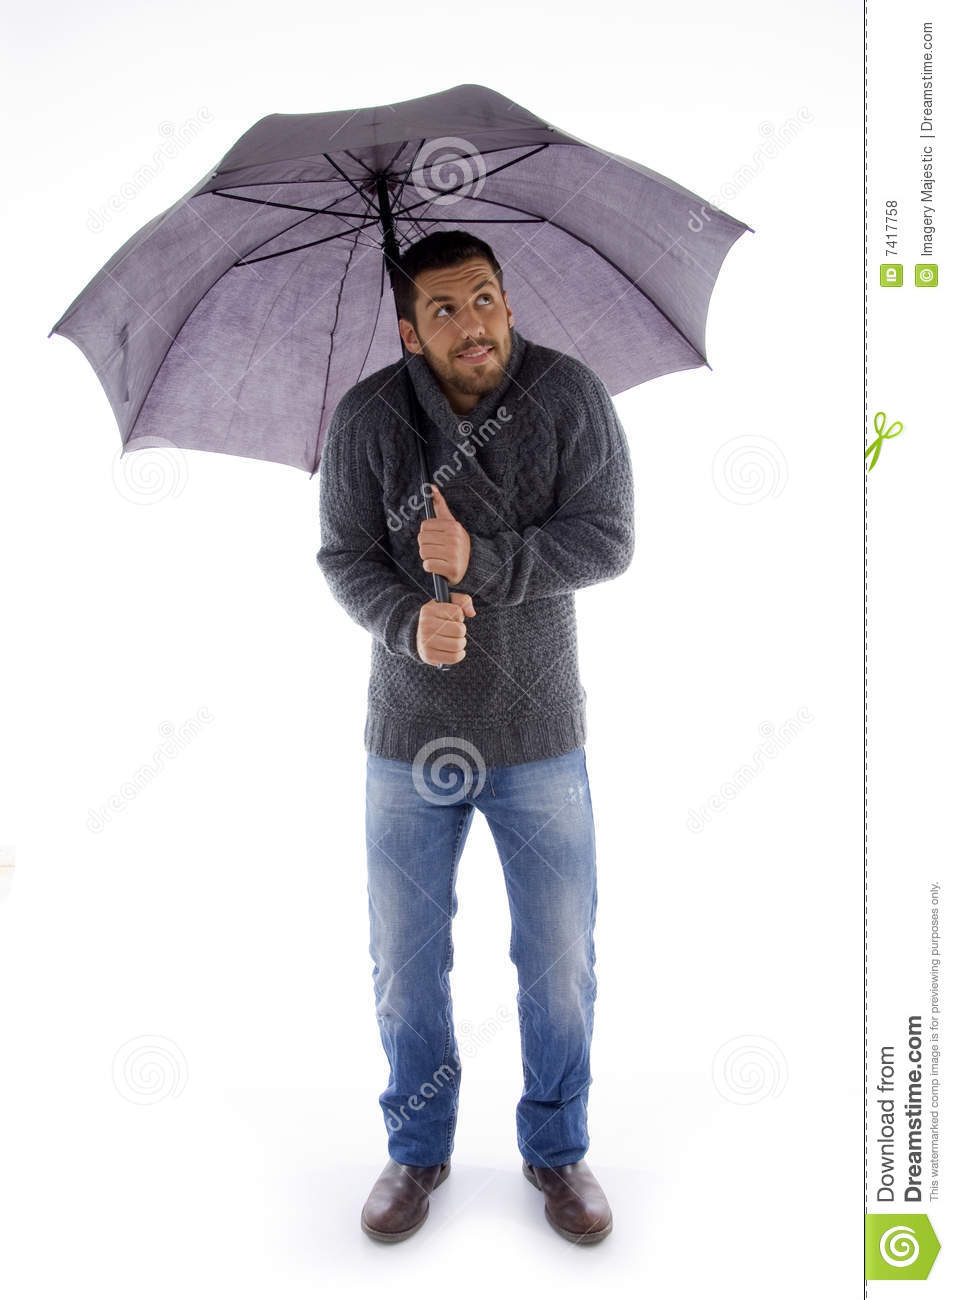 Man Holding An Umbrella And Looking Up Stock Photo Image Of Twenties Studio 7417758